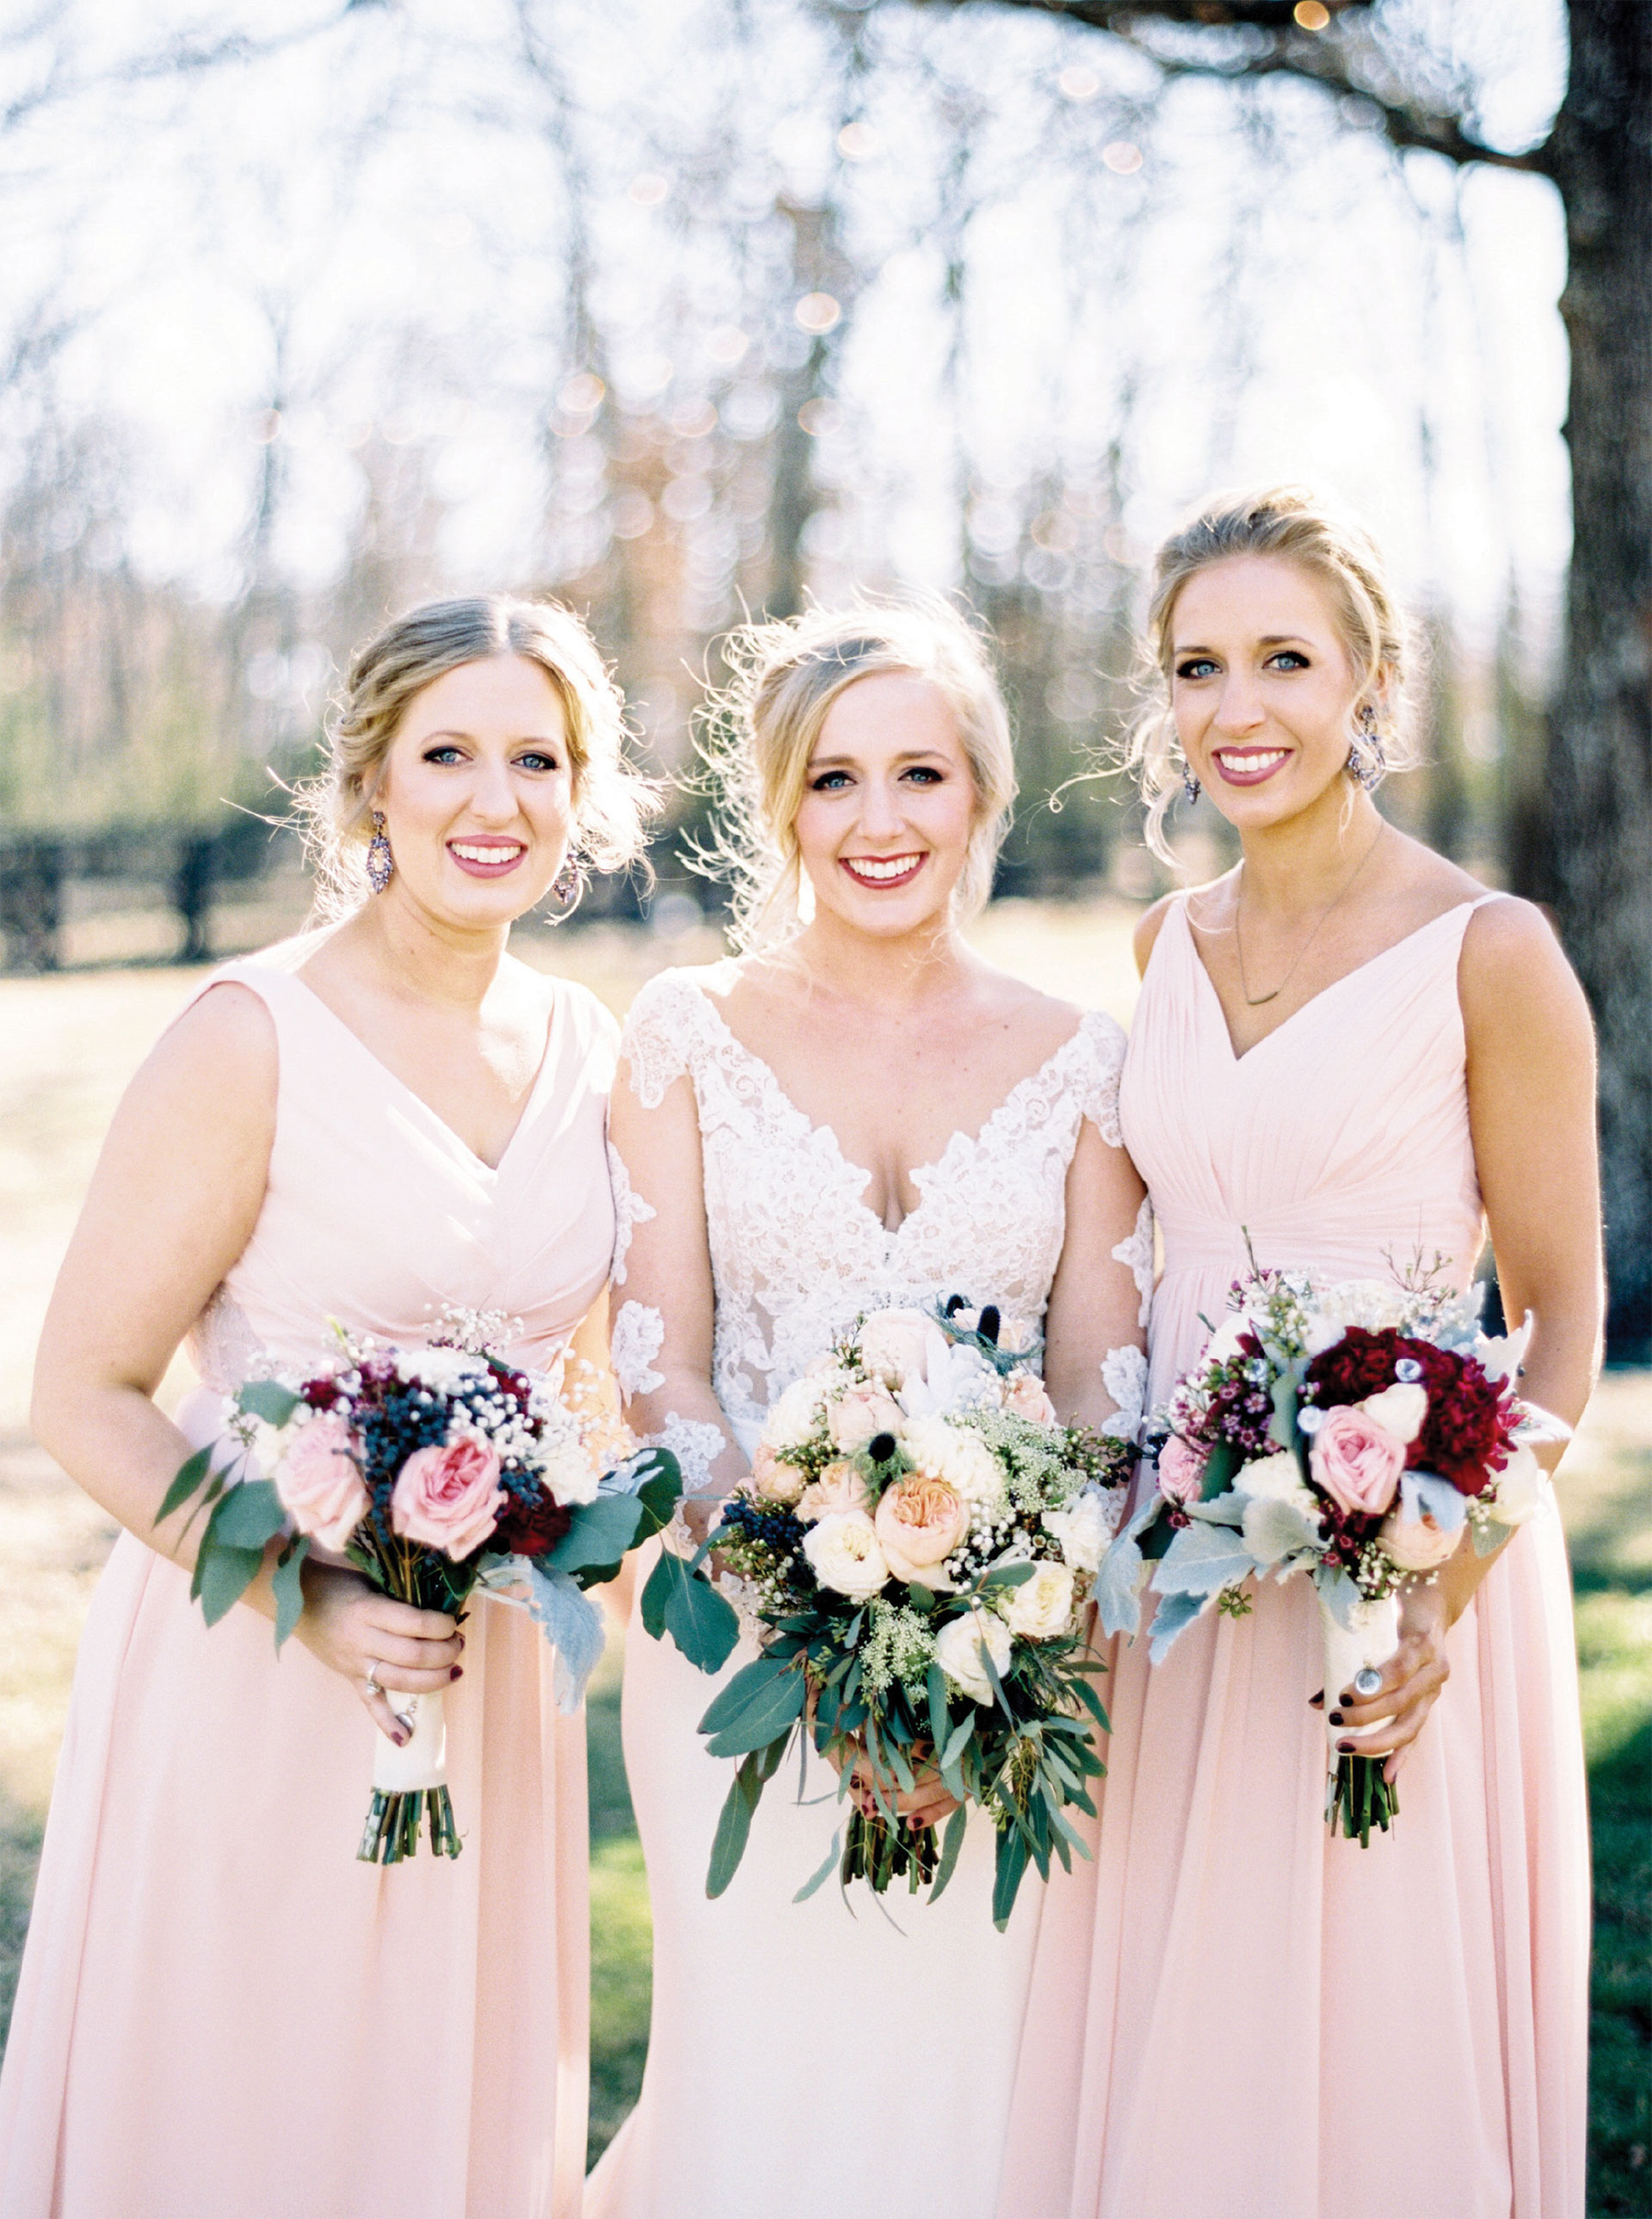 Three Brides in Dresses Holding Flowers for Photo